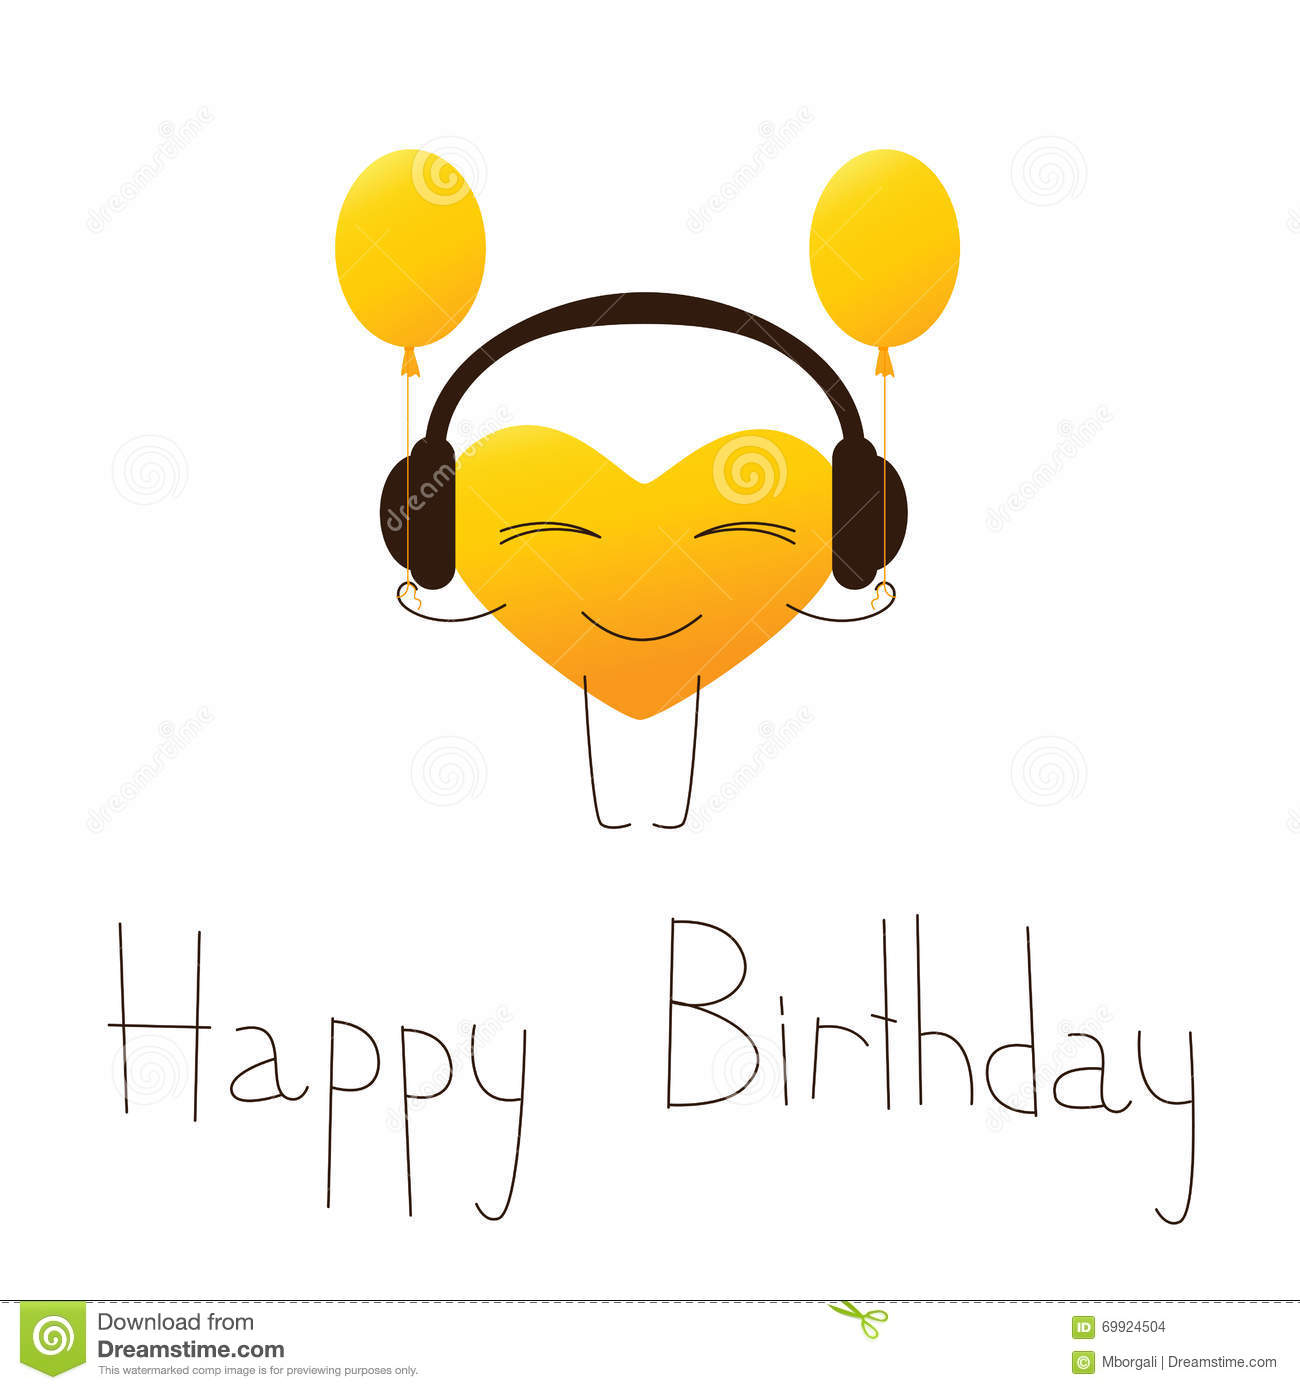 Cartoon Heart Character In Headphones With Balloons And Lettering Happy Birthday English Isolated On White Background Design Element Greeting Card